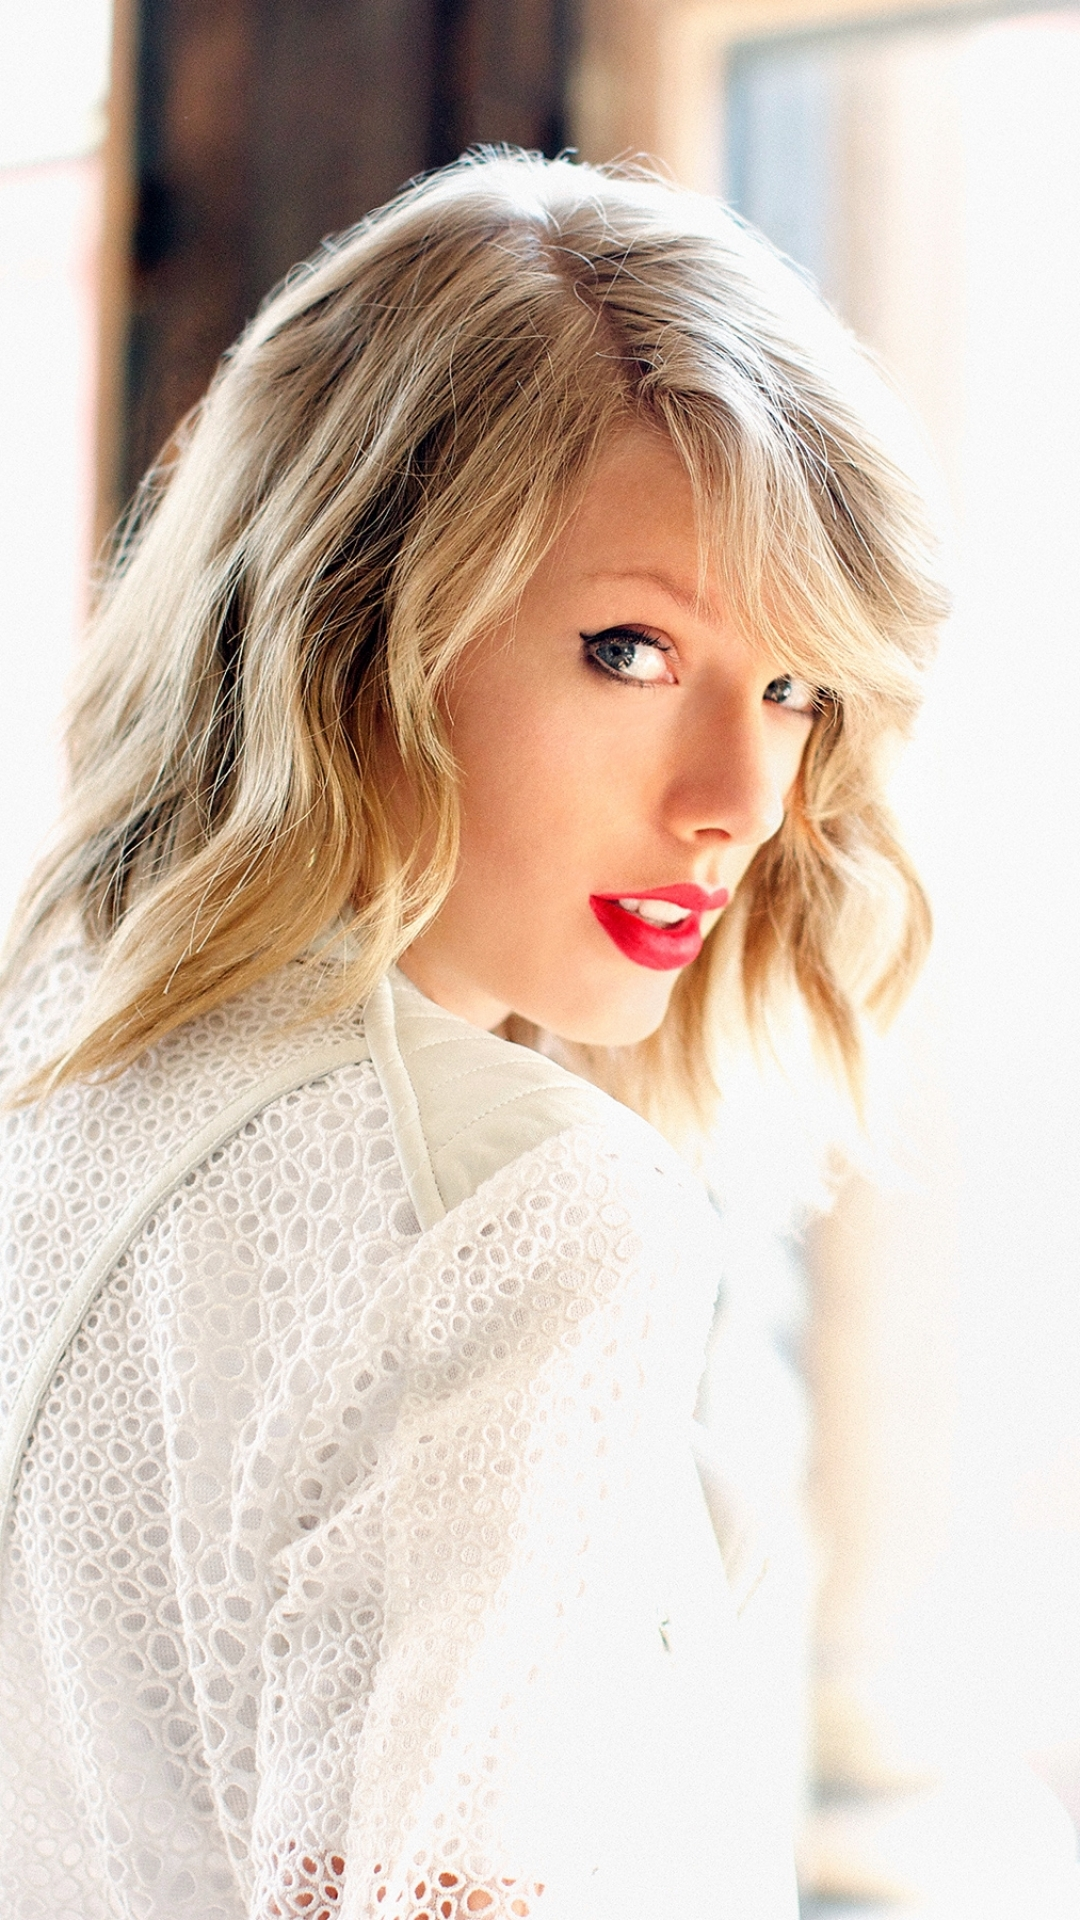 Taylor Swift Mobile Wallpapers Wallpaper Cave